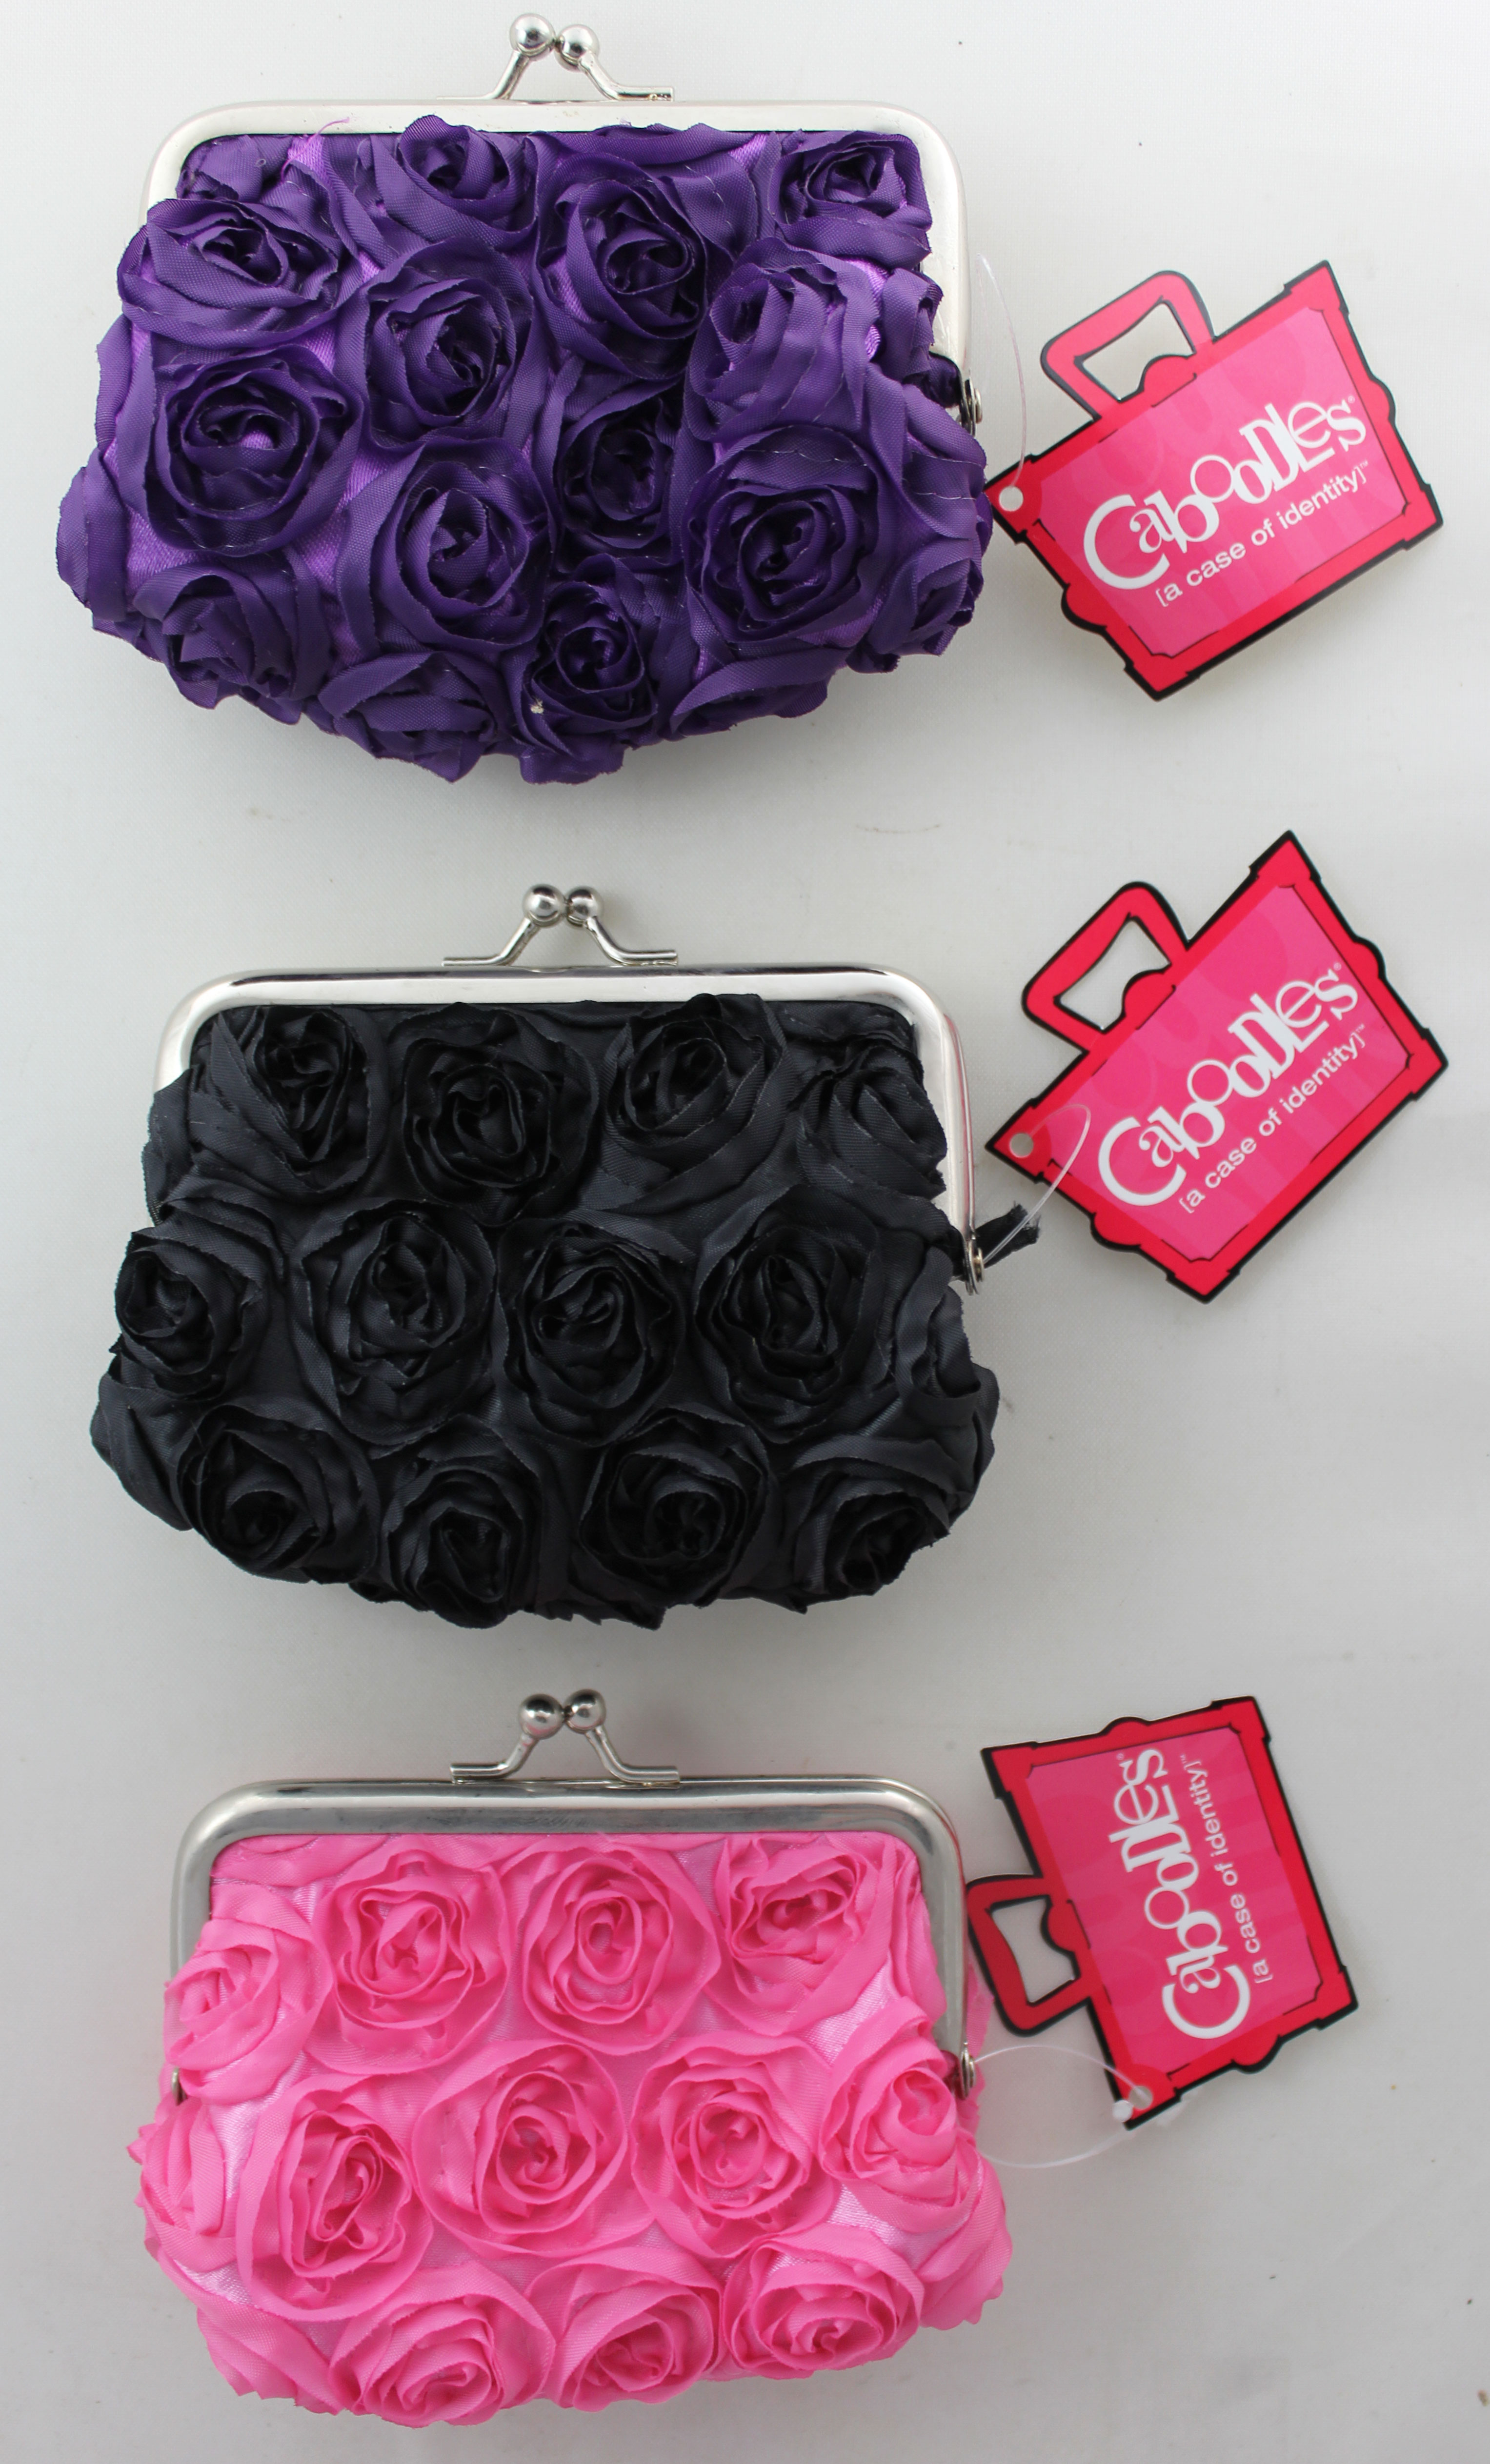 Caboodles MINI PIXIE COIN TRAVEL COSMETIC PURSE ROSE FLOWER FABRIC